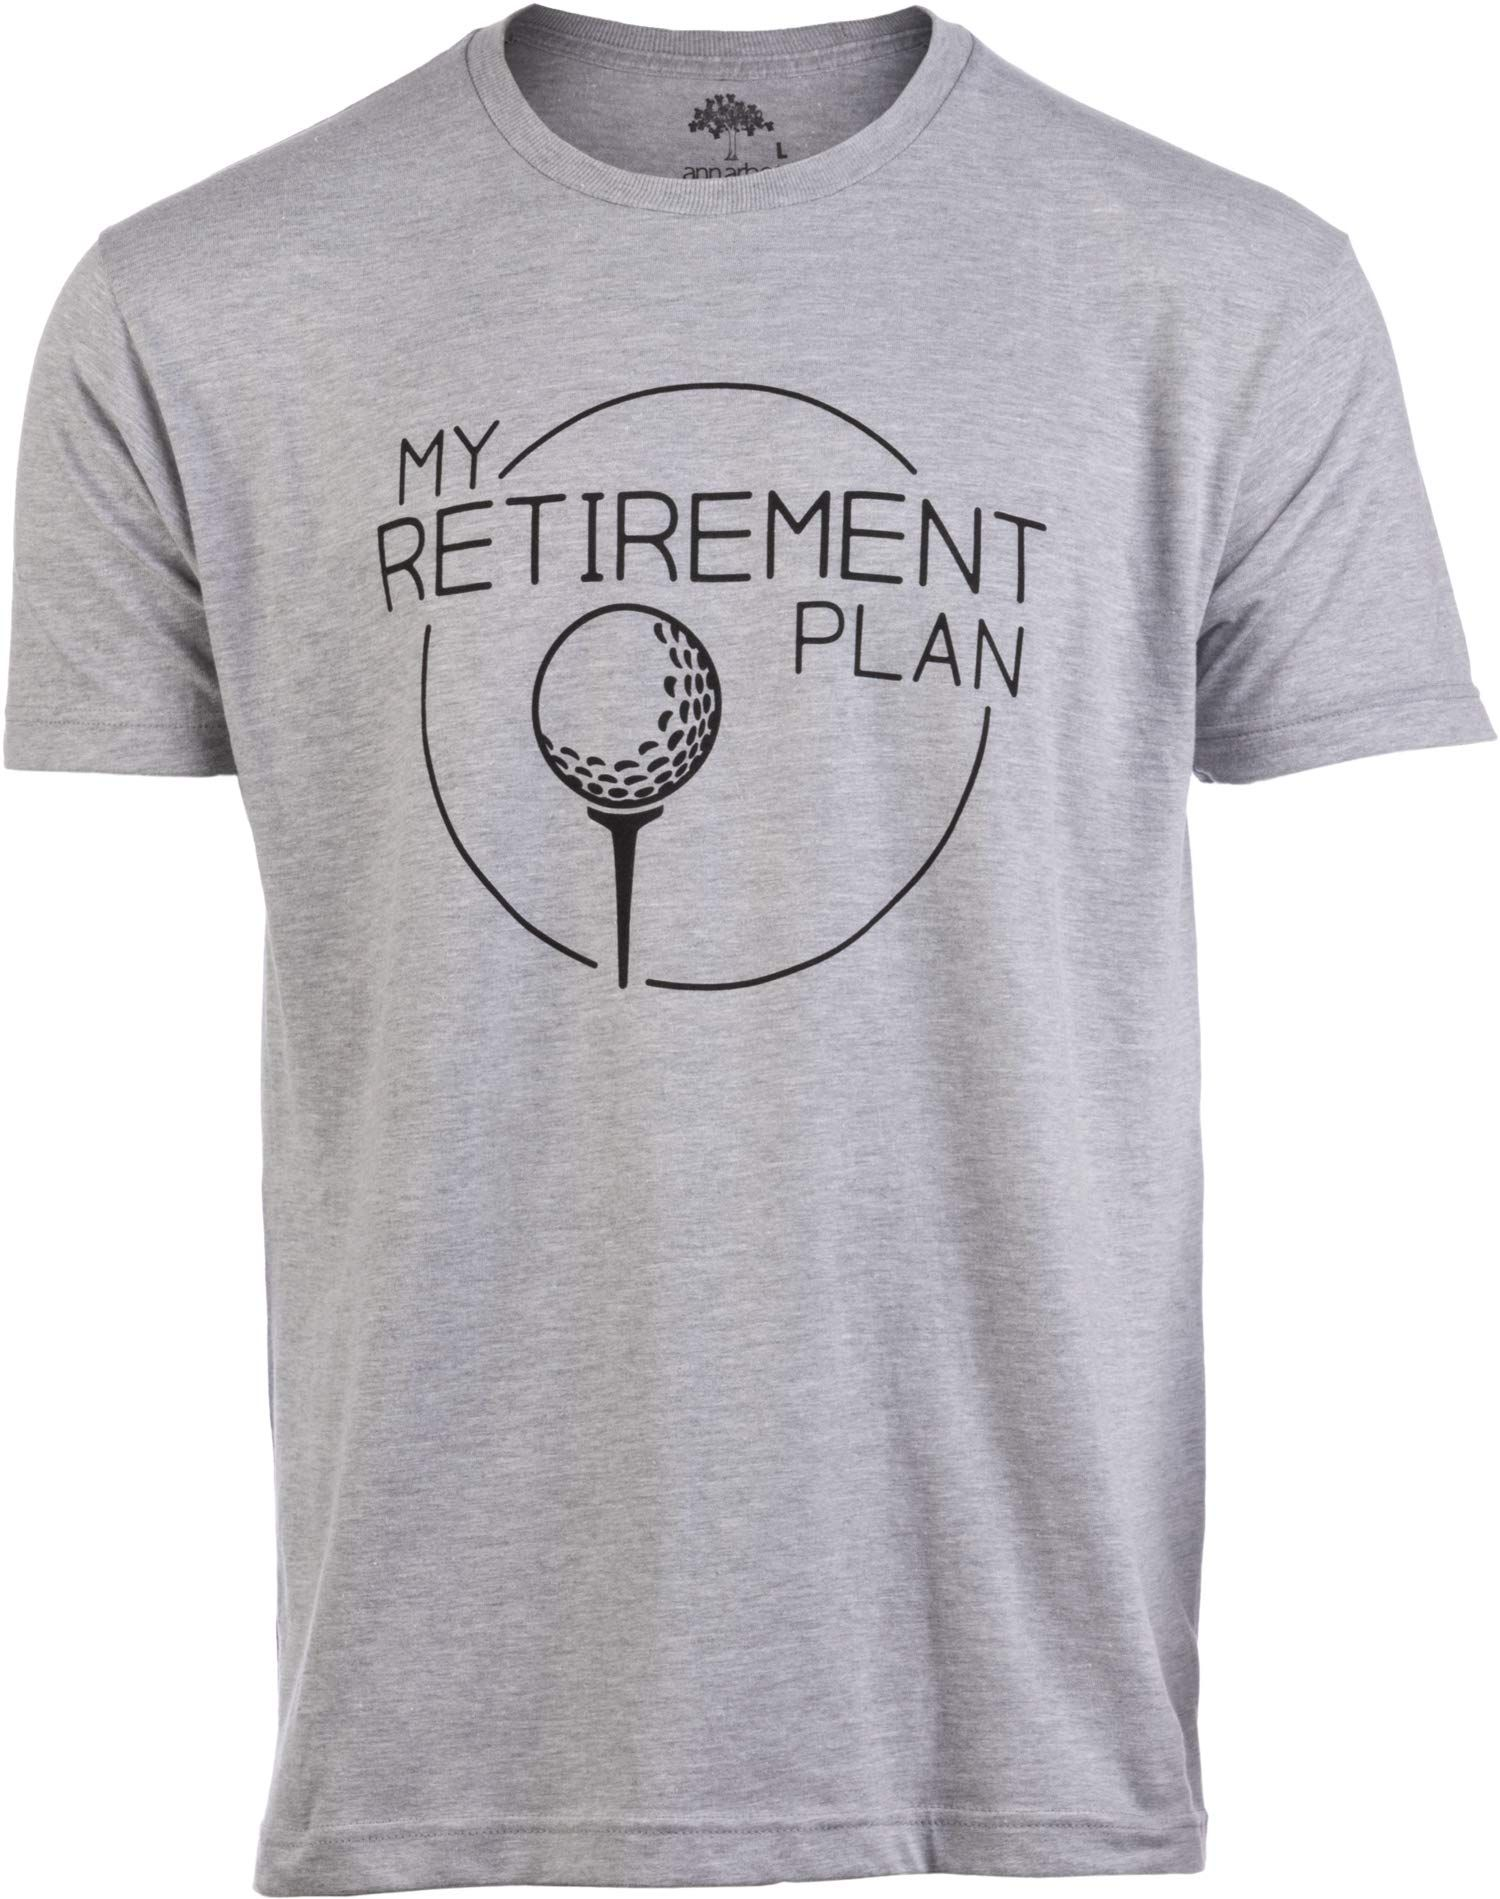 My Golf Retirement Plan Funny Saying Golfing Shirt Golfer Ball Humor For Men T Shirt Continuously The Product Golf Shirts Mens Tshirts Golf Gifts For Men